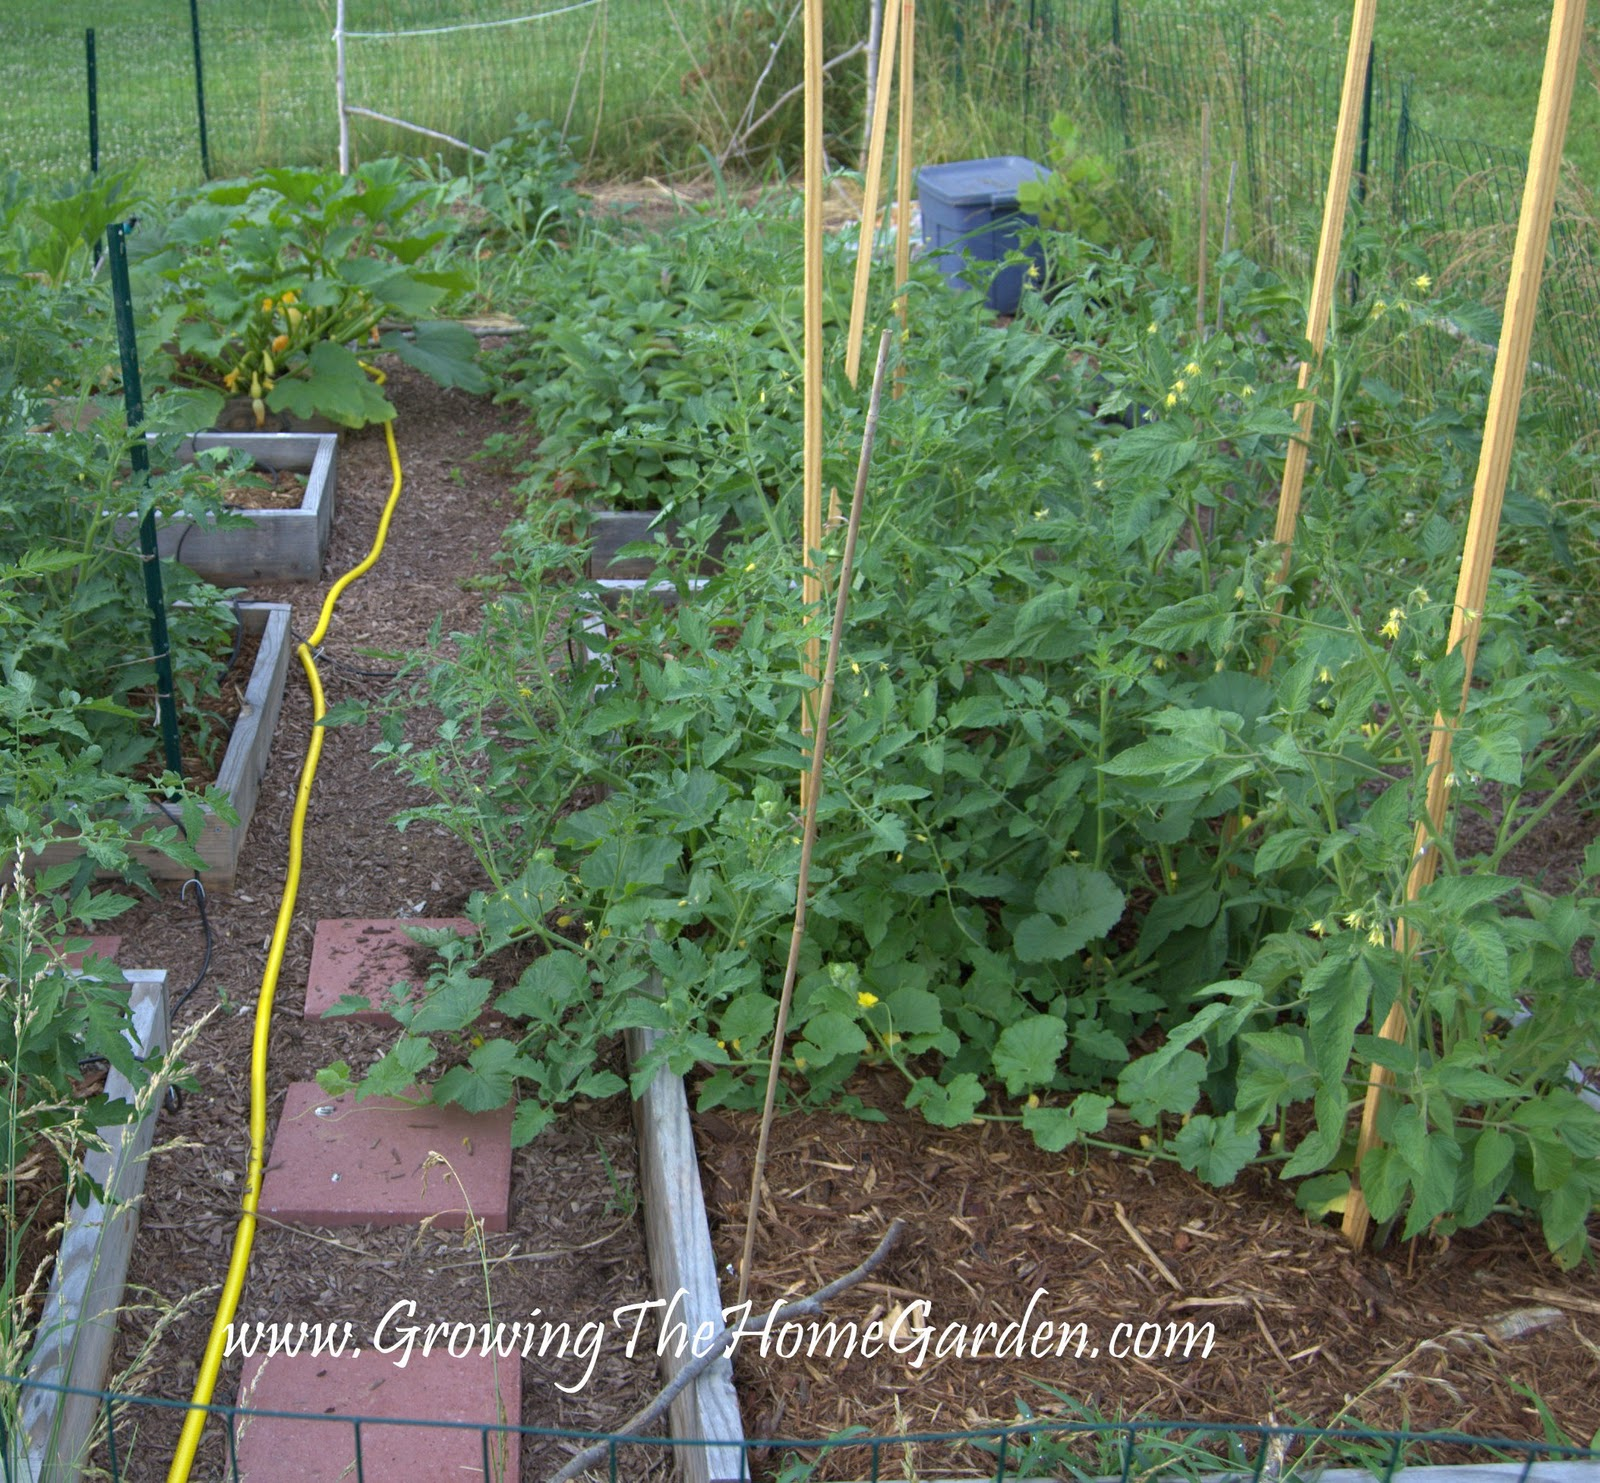 Designing A Vegetable Garden With Raised Beds recently built 4 new raised beds for vegetable garden in our 11 Tips To Consider When Designing A Raised Bed Vegetable Garden Layout